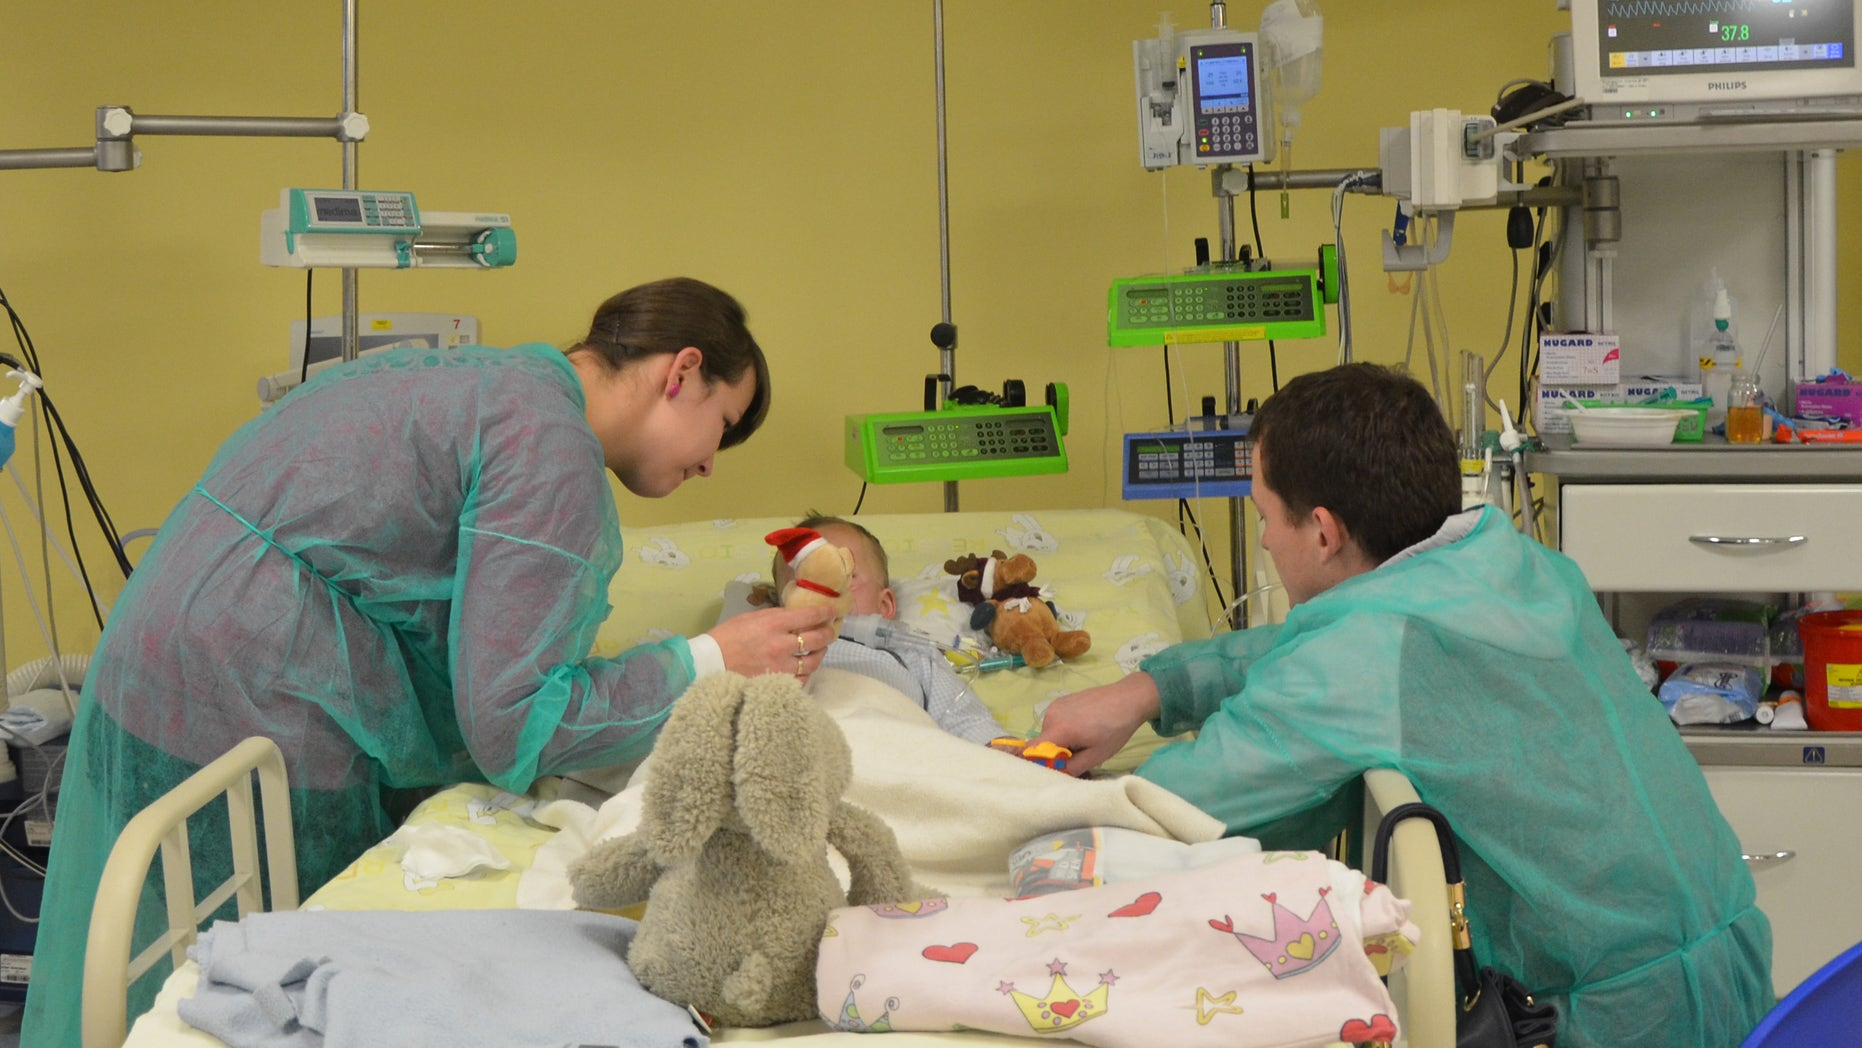 In this photo taken by Magdalena Oberc, the spokeswoman of the childrens hospital in Krakow, Poland, on Thursday, Dec. 4, 2014, a 2-year-and-4-months-old Adam is seen with his mother Paulina, his father Mateusz and a teddy bear, just a few days after he was brought to the hospital with his temperature at only 12.7 C (55 F) and his heart beating once every few dozen seconds after being found outdoors in sub-freezing temperature on Sunday morning with almost no clothes on. Dr. Janusz Skalski, a heart surgeon at the hospital, said its a miracle that the boy is showing no negative signs from the hours that he spent in such low temperature. (AP Photo/Magdalena Oberc, Krakow Childrens Hospital spokeswoman)